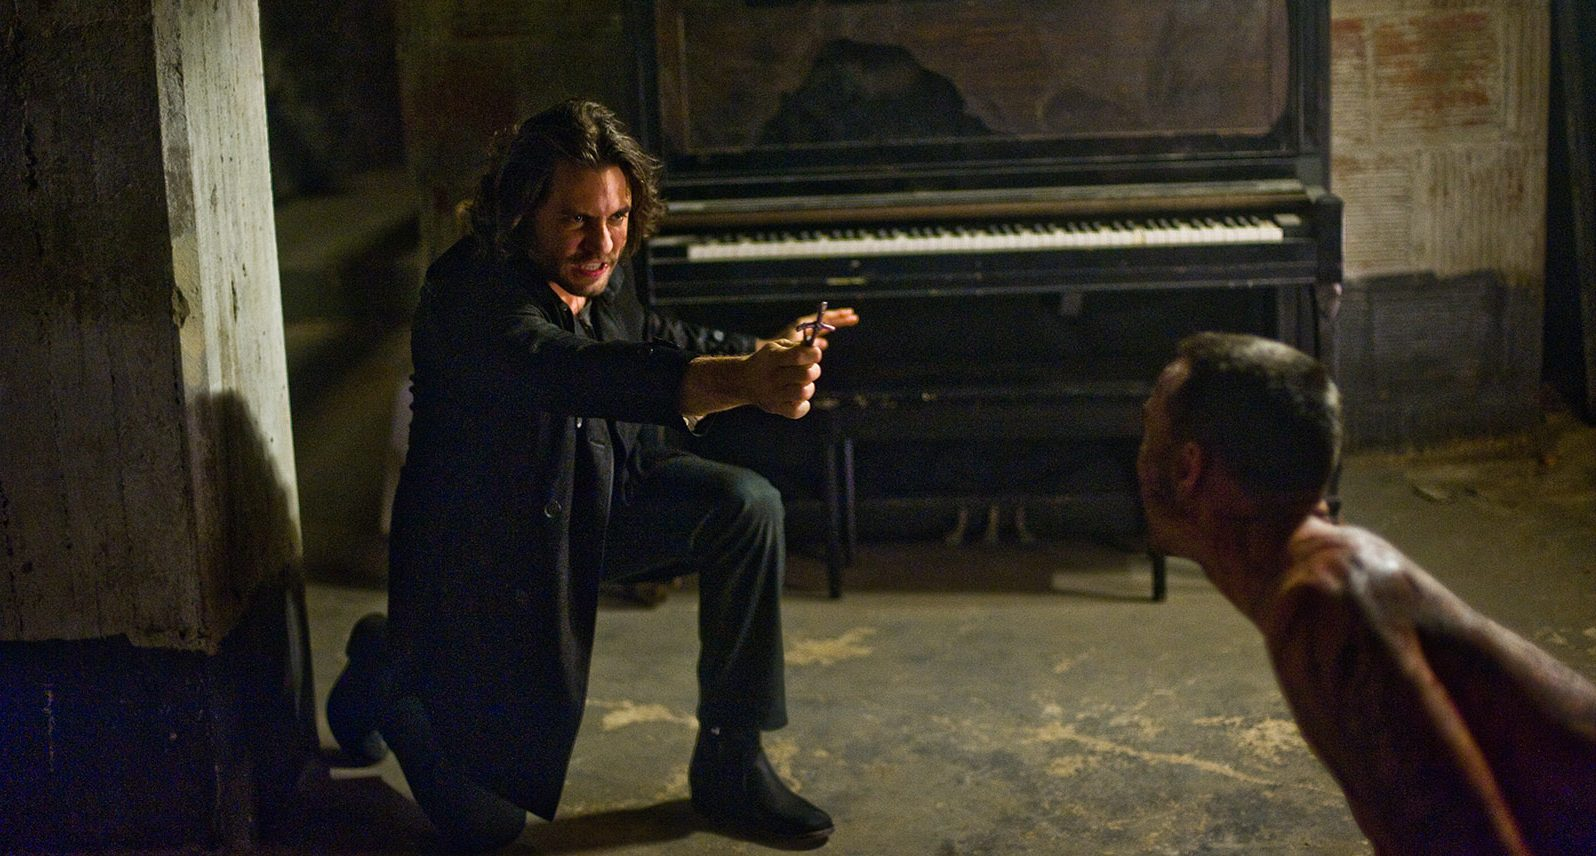 Picture courtesy of deliverusfromevil-movie.net